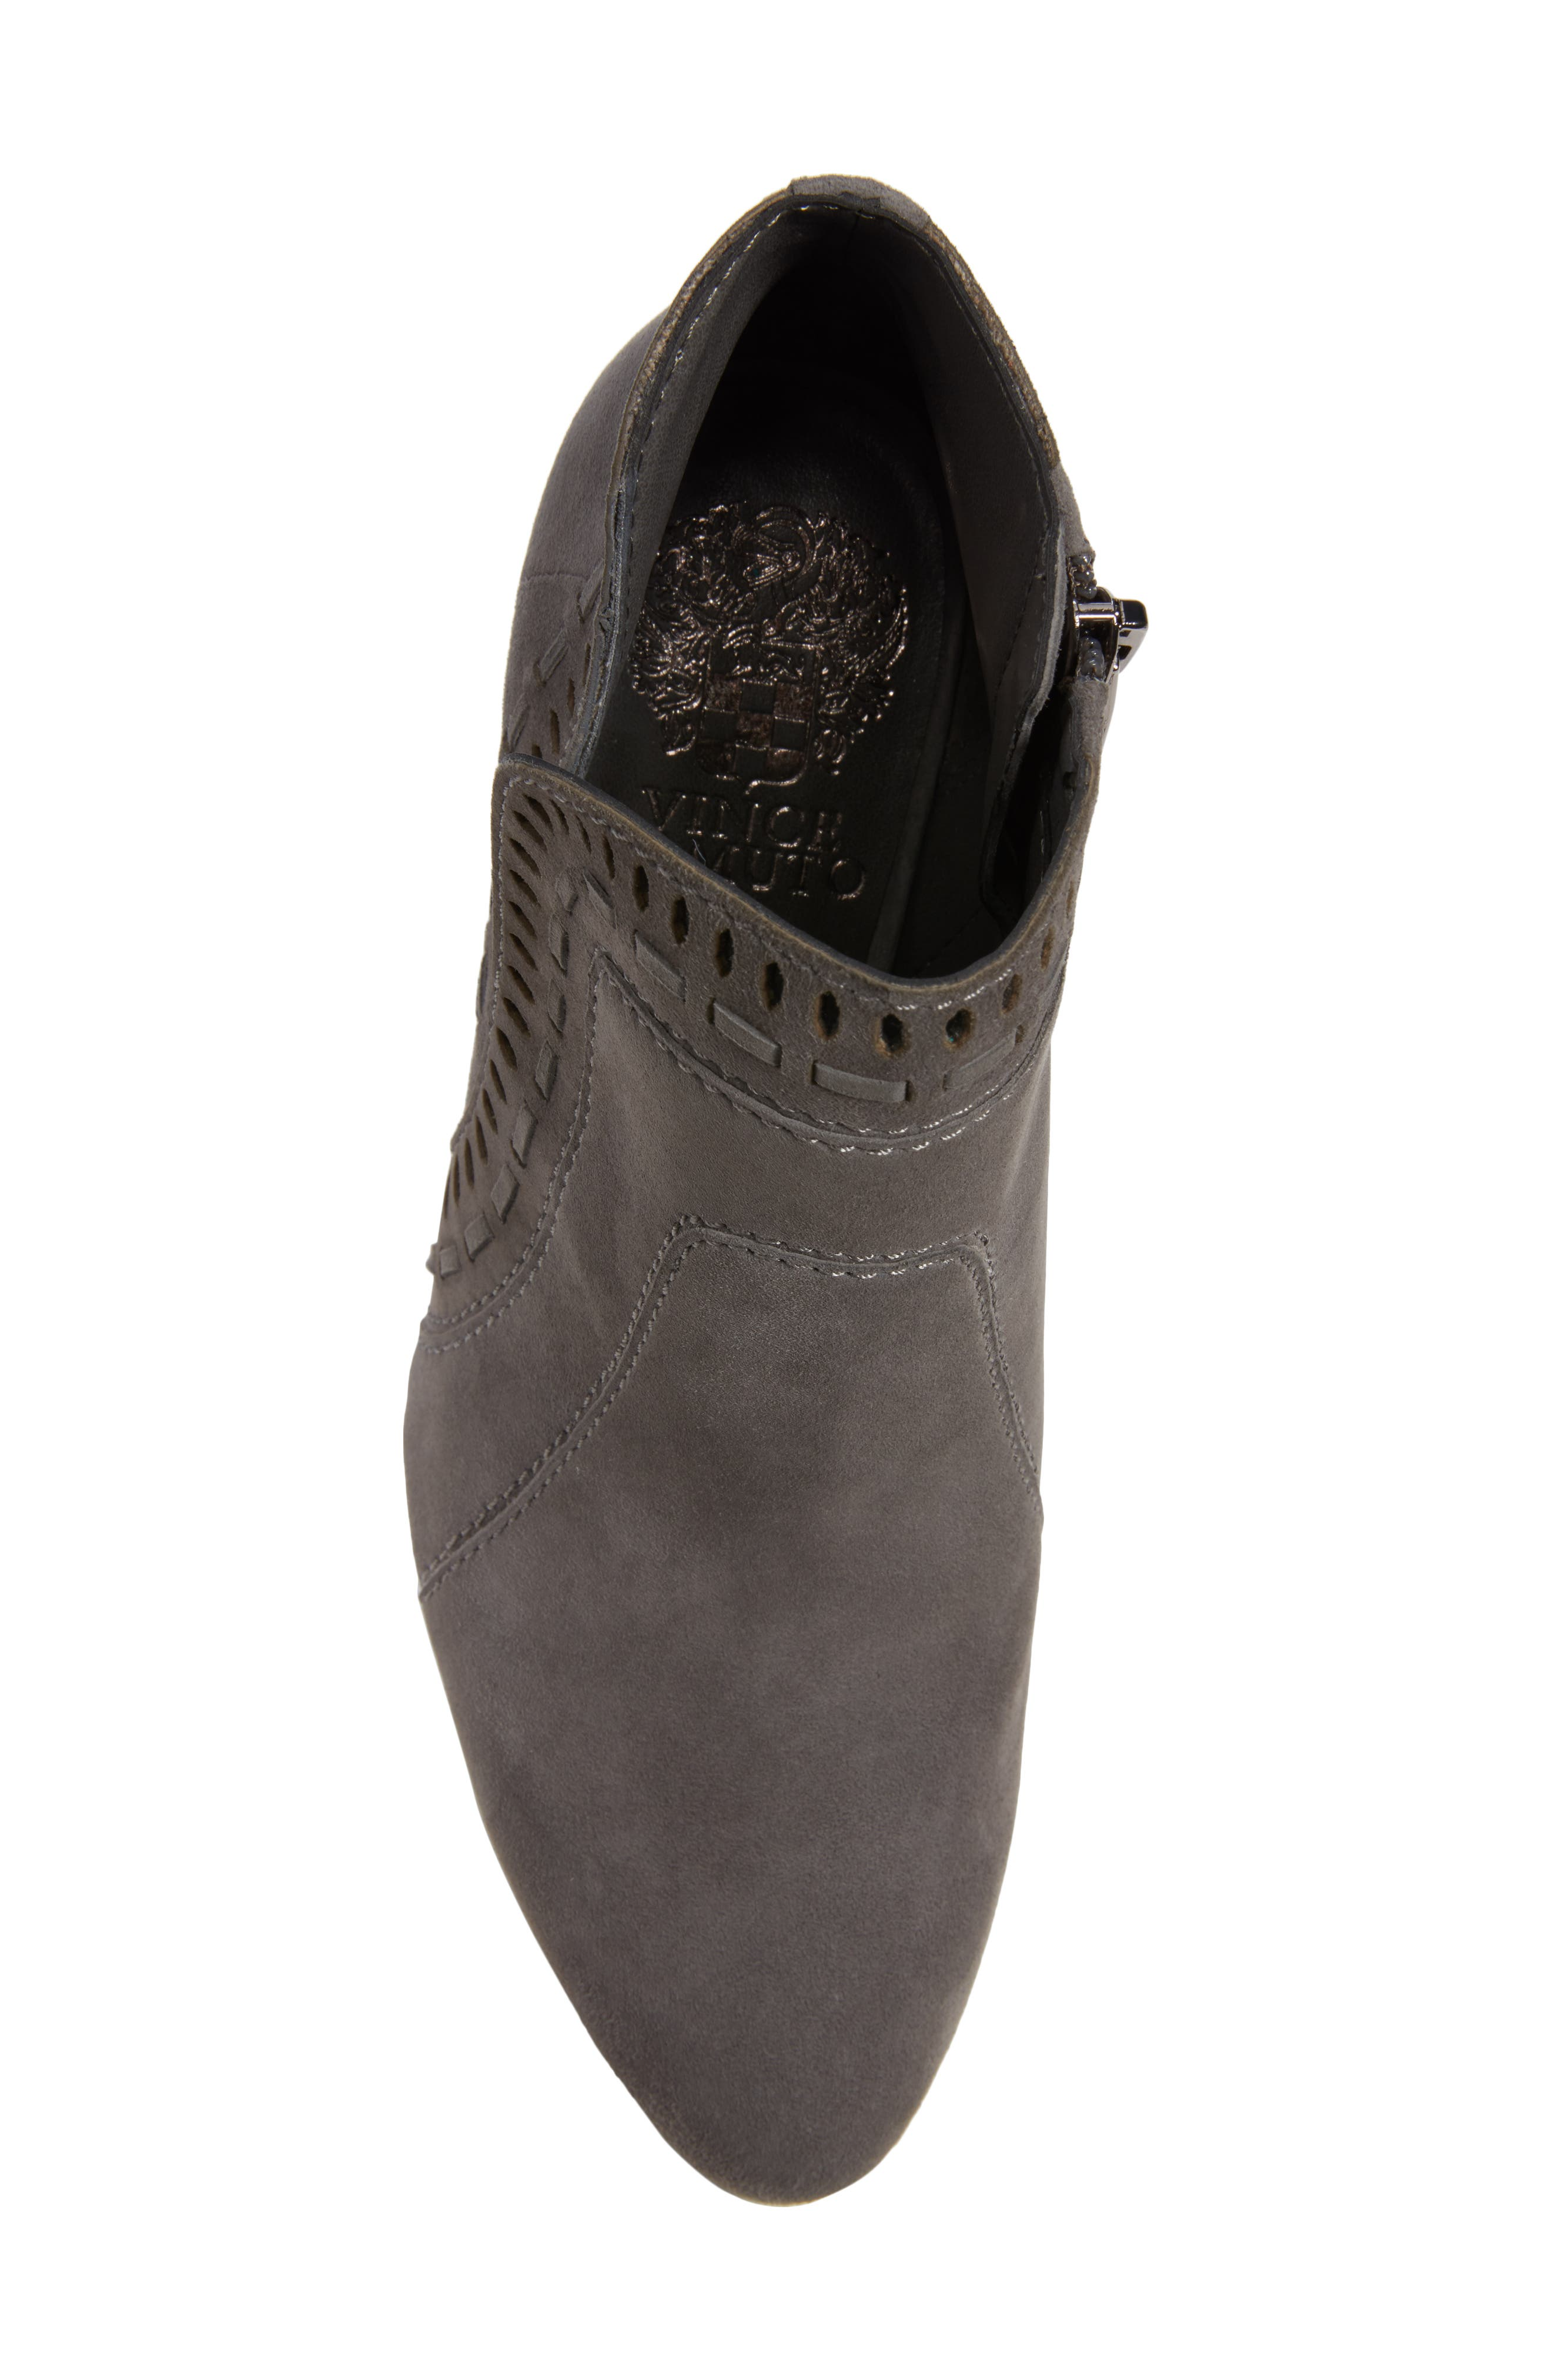 Reeista Bootie,                             Alternate thumbnail 5, color,                             GREYSTONE SUEDE